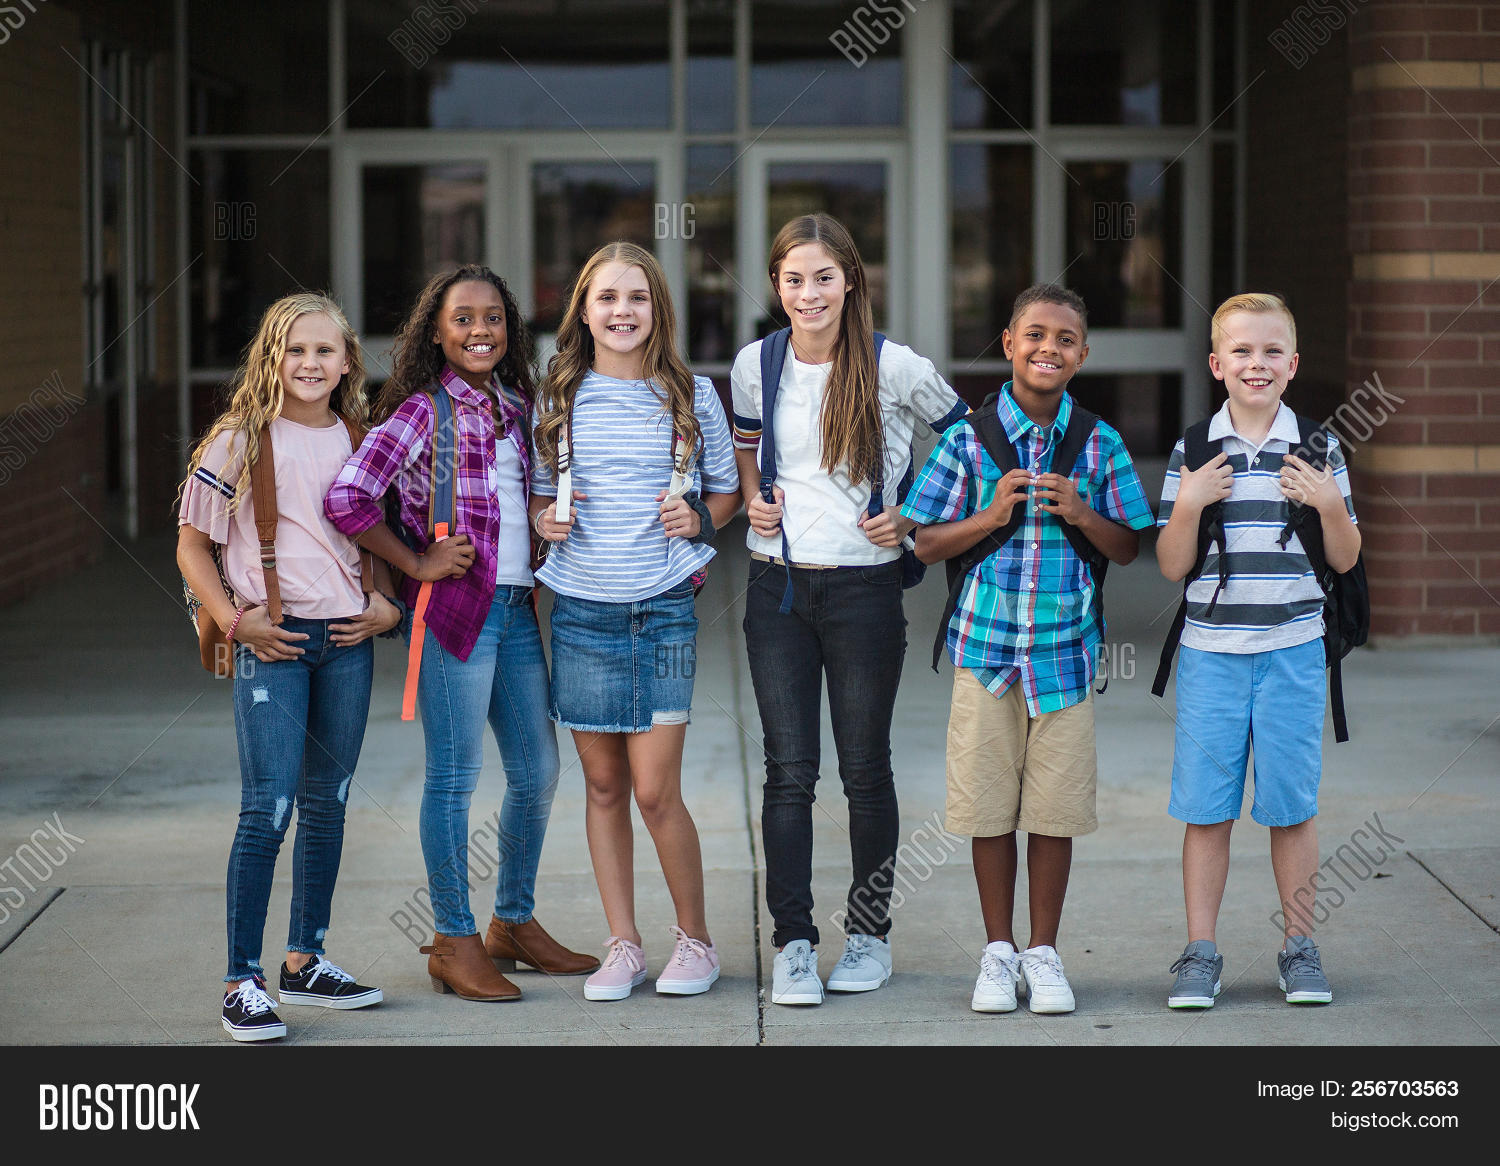 adolescent,african american,athletic,background,backpack,black,boy,boys,building,cheerful,childhood,children,class,classmate,classmates,copy space,cute,diverse,diversity,education,elementary school,ethnicity,female,friends,friendship,girls,grade school,group,hanging out,happy,hispanic,junior high,kids,learning,lifestyle,people,portrait,pre-adolescent,real,school,school kids,smiling,standing,students,teen,teenage,togetherness,toothy,tween,young